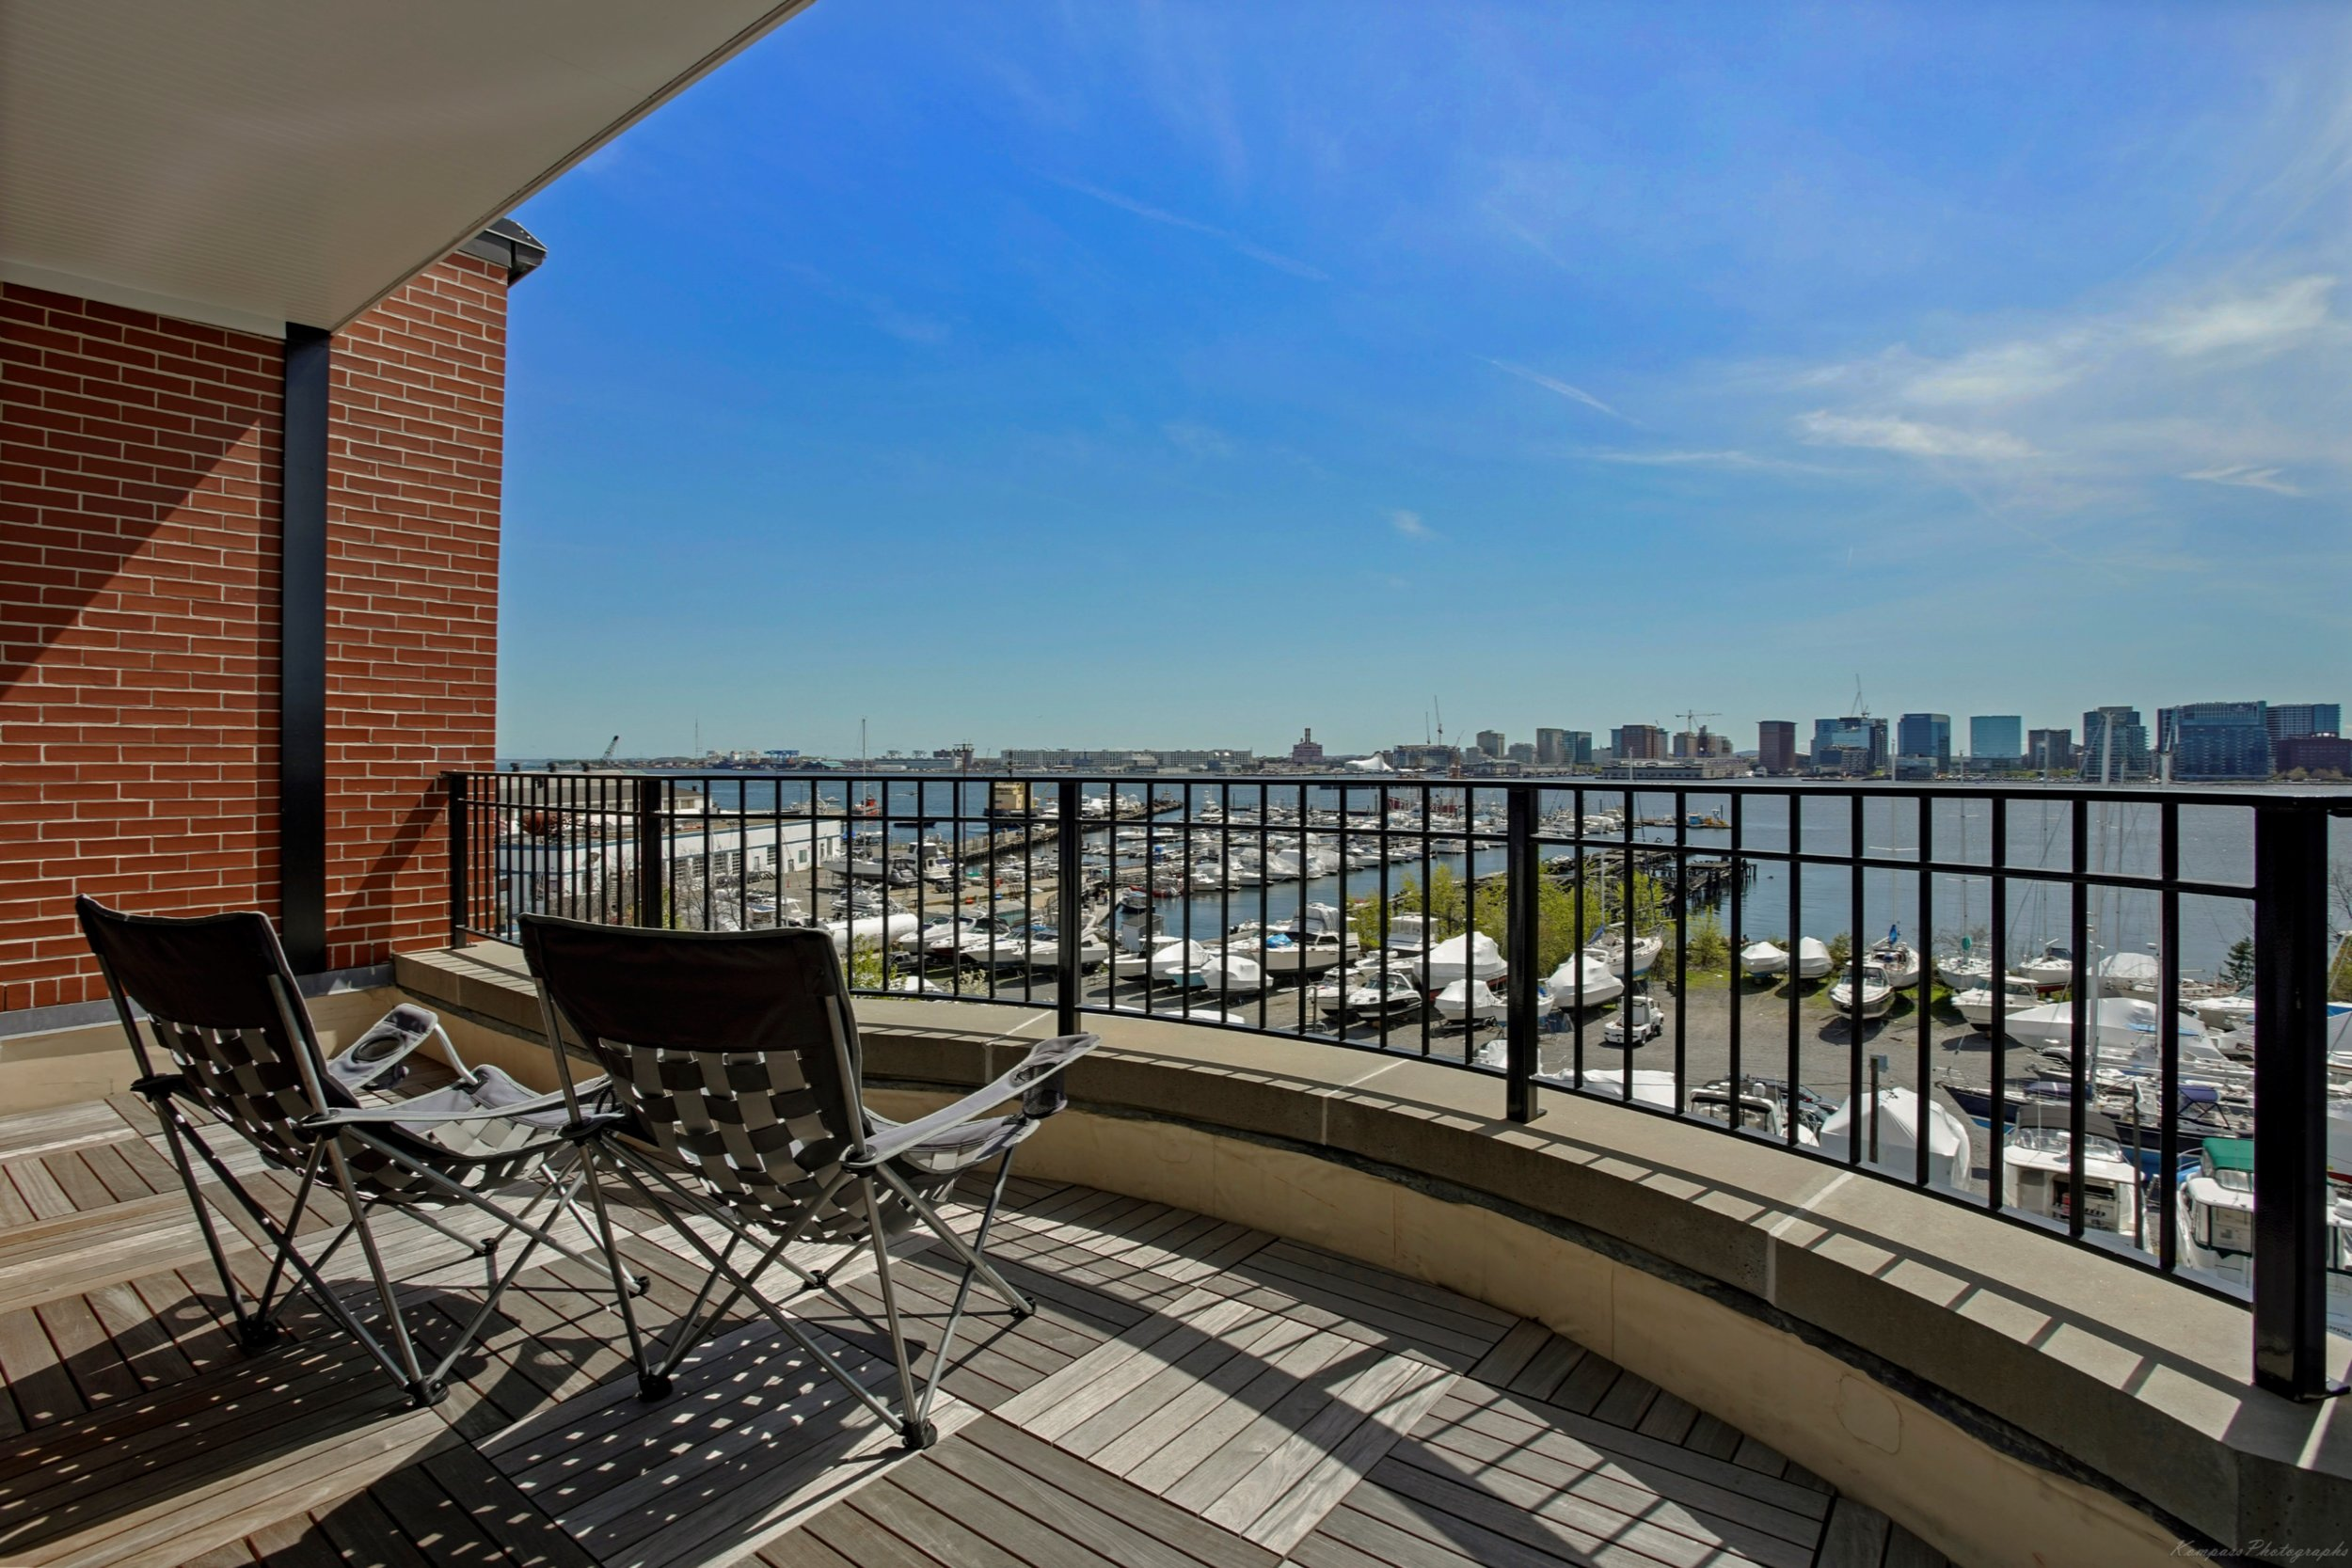 brigham st east boston 2019    sony ILCE-7M3 17mm hdr raw files